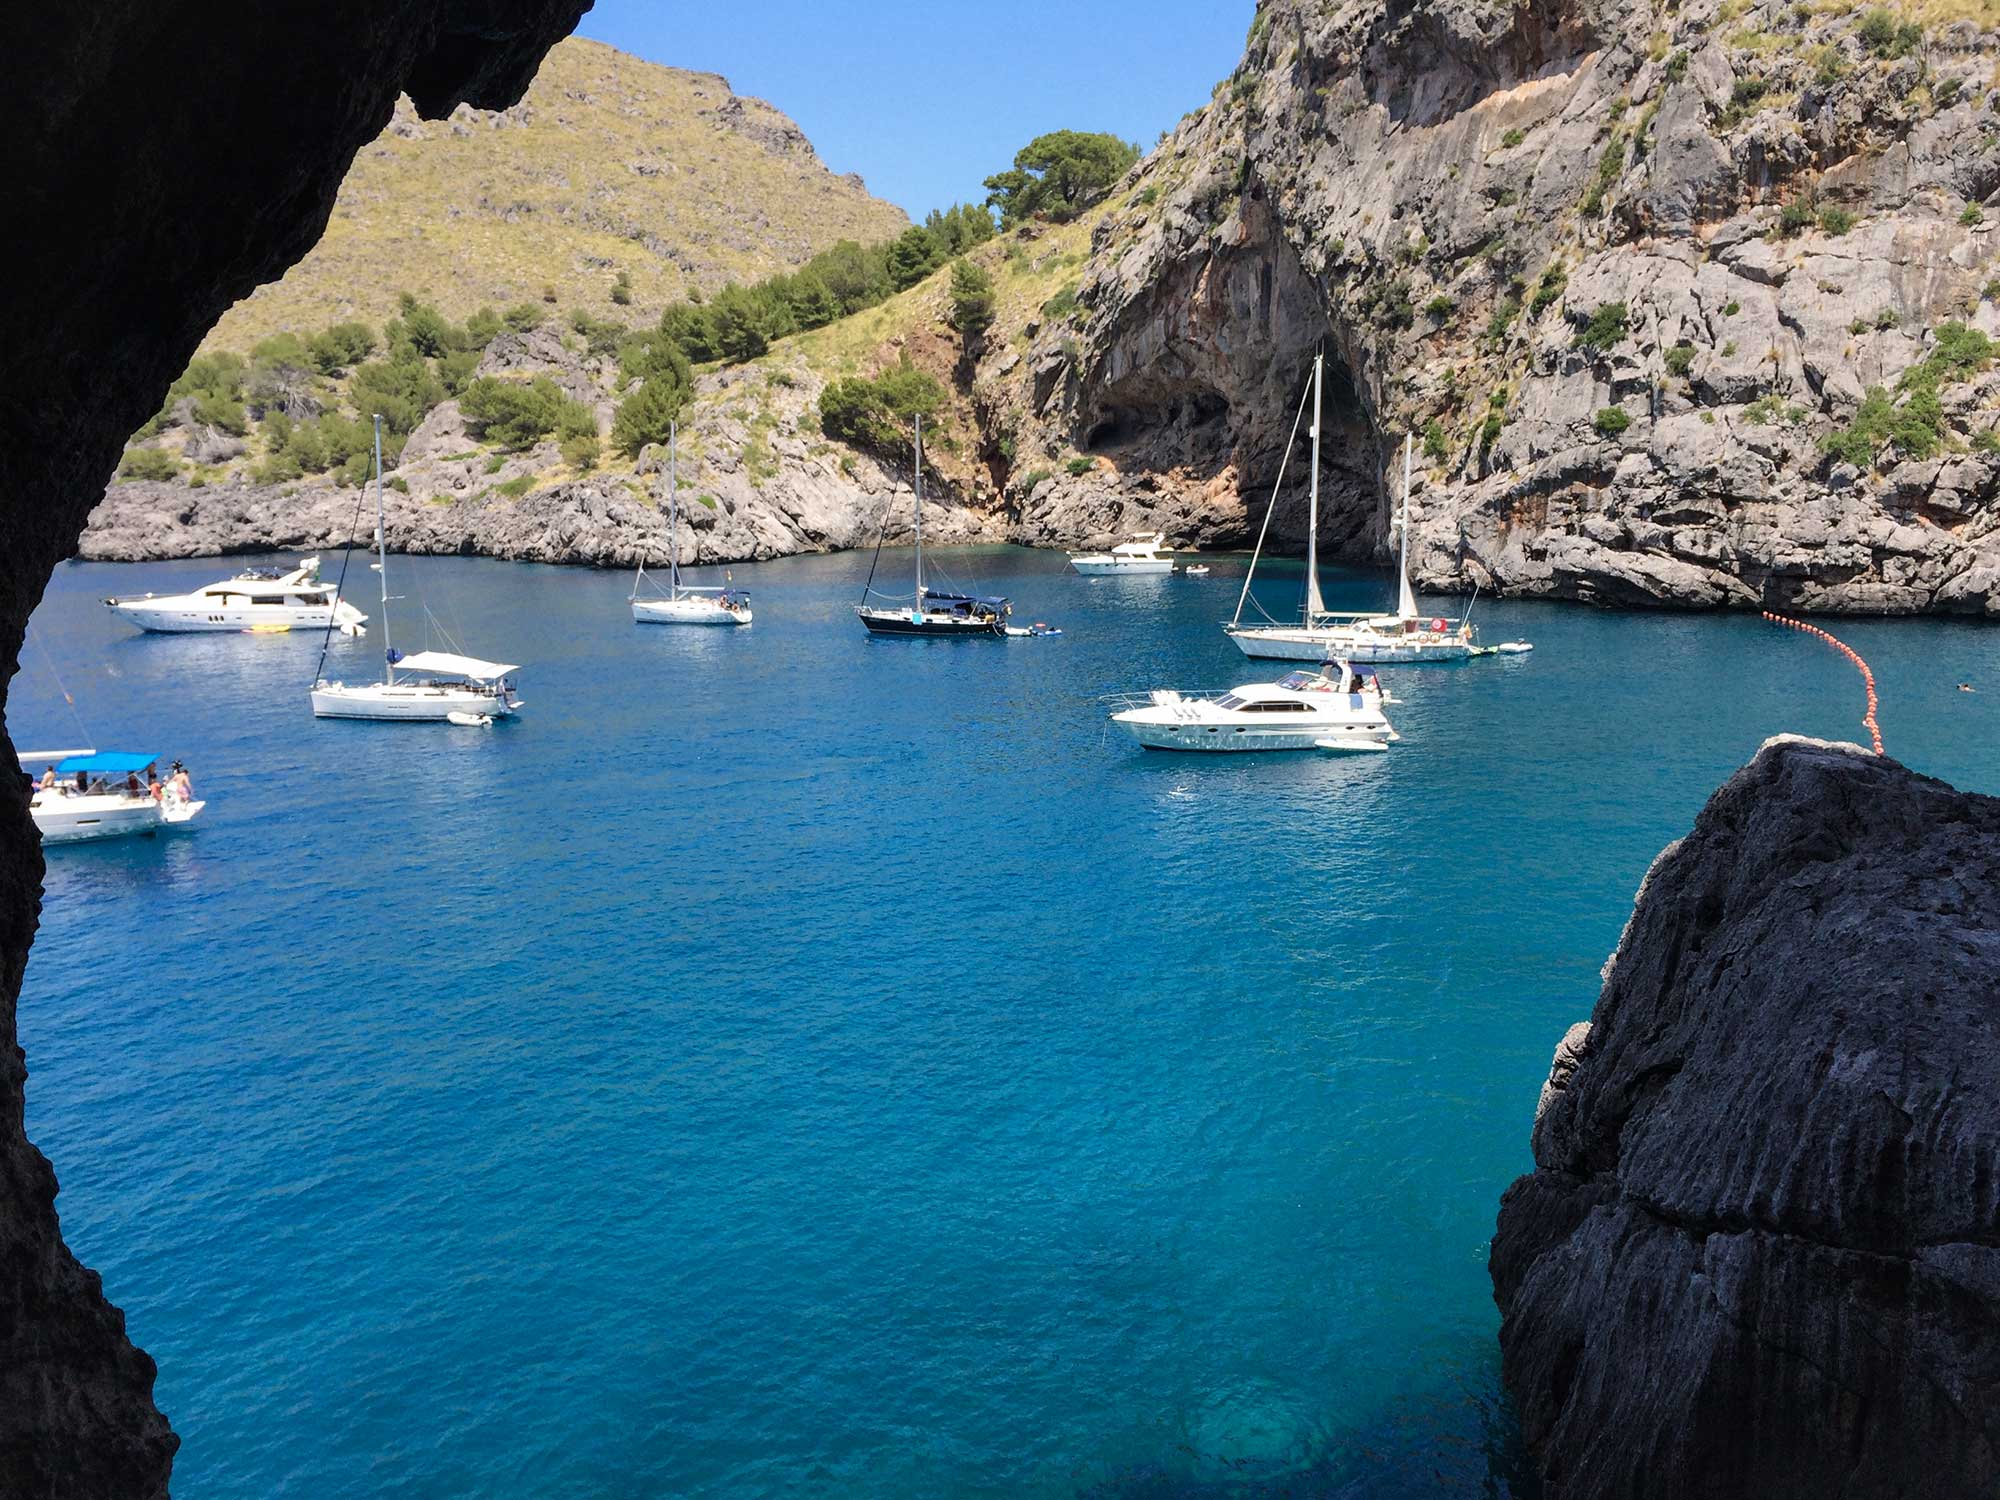 TDP-62-cold-and-refreshing-but-just-out-of-reach-torrent-de-pareis-mallorca-day-hike.jpg